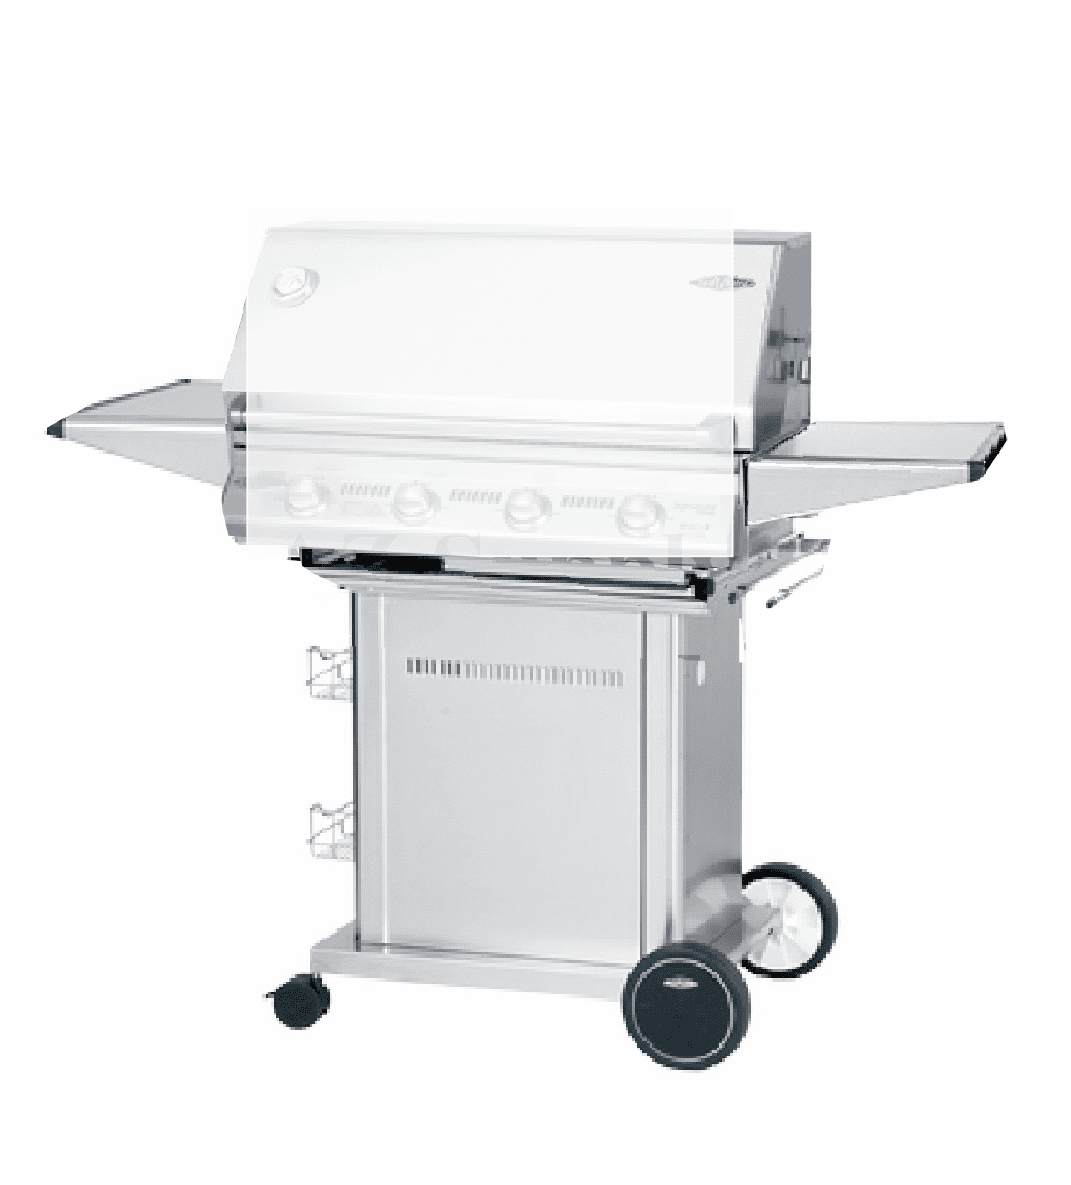 Beefeater 22145 Pedestal / Trolley for 4 burner